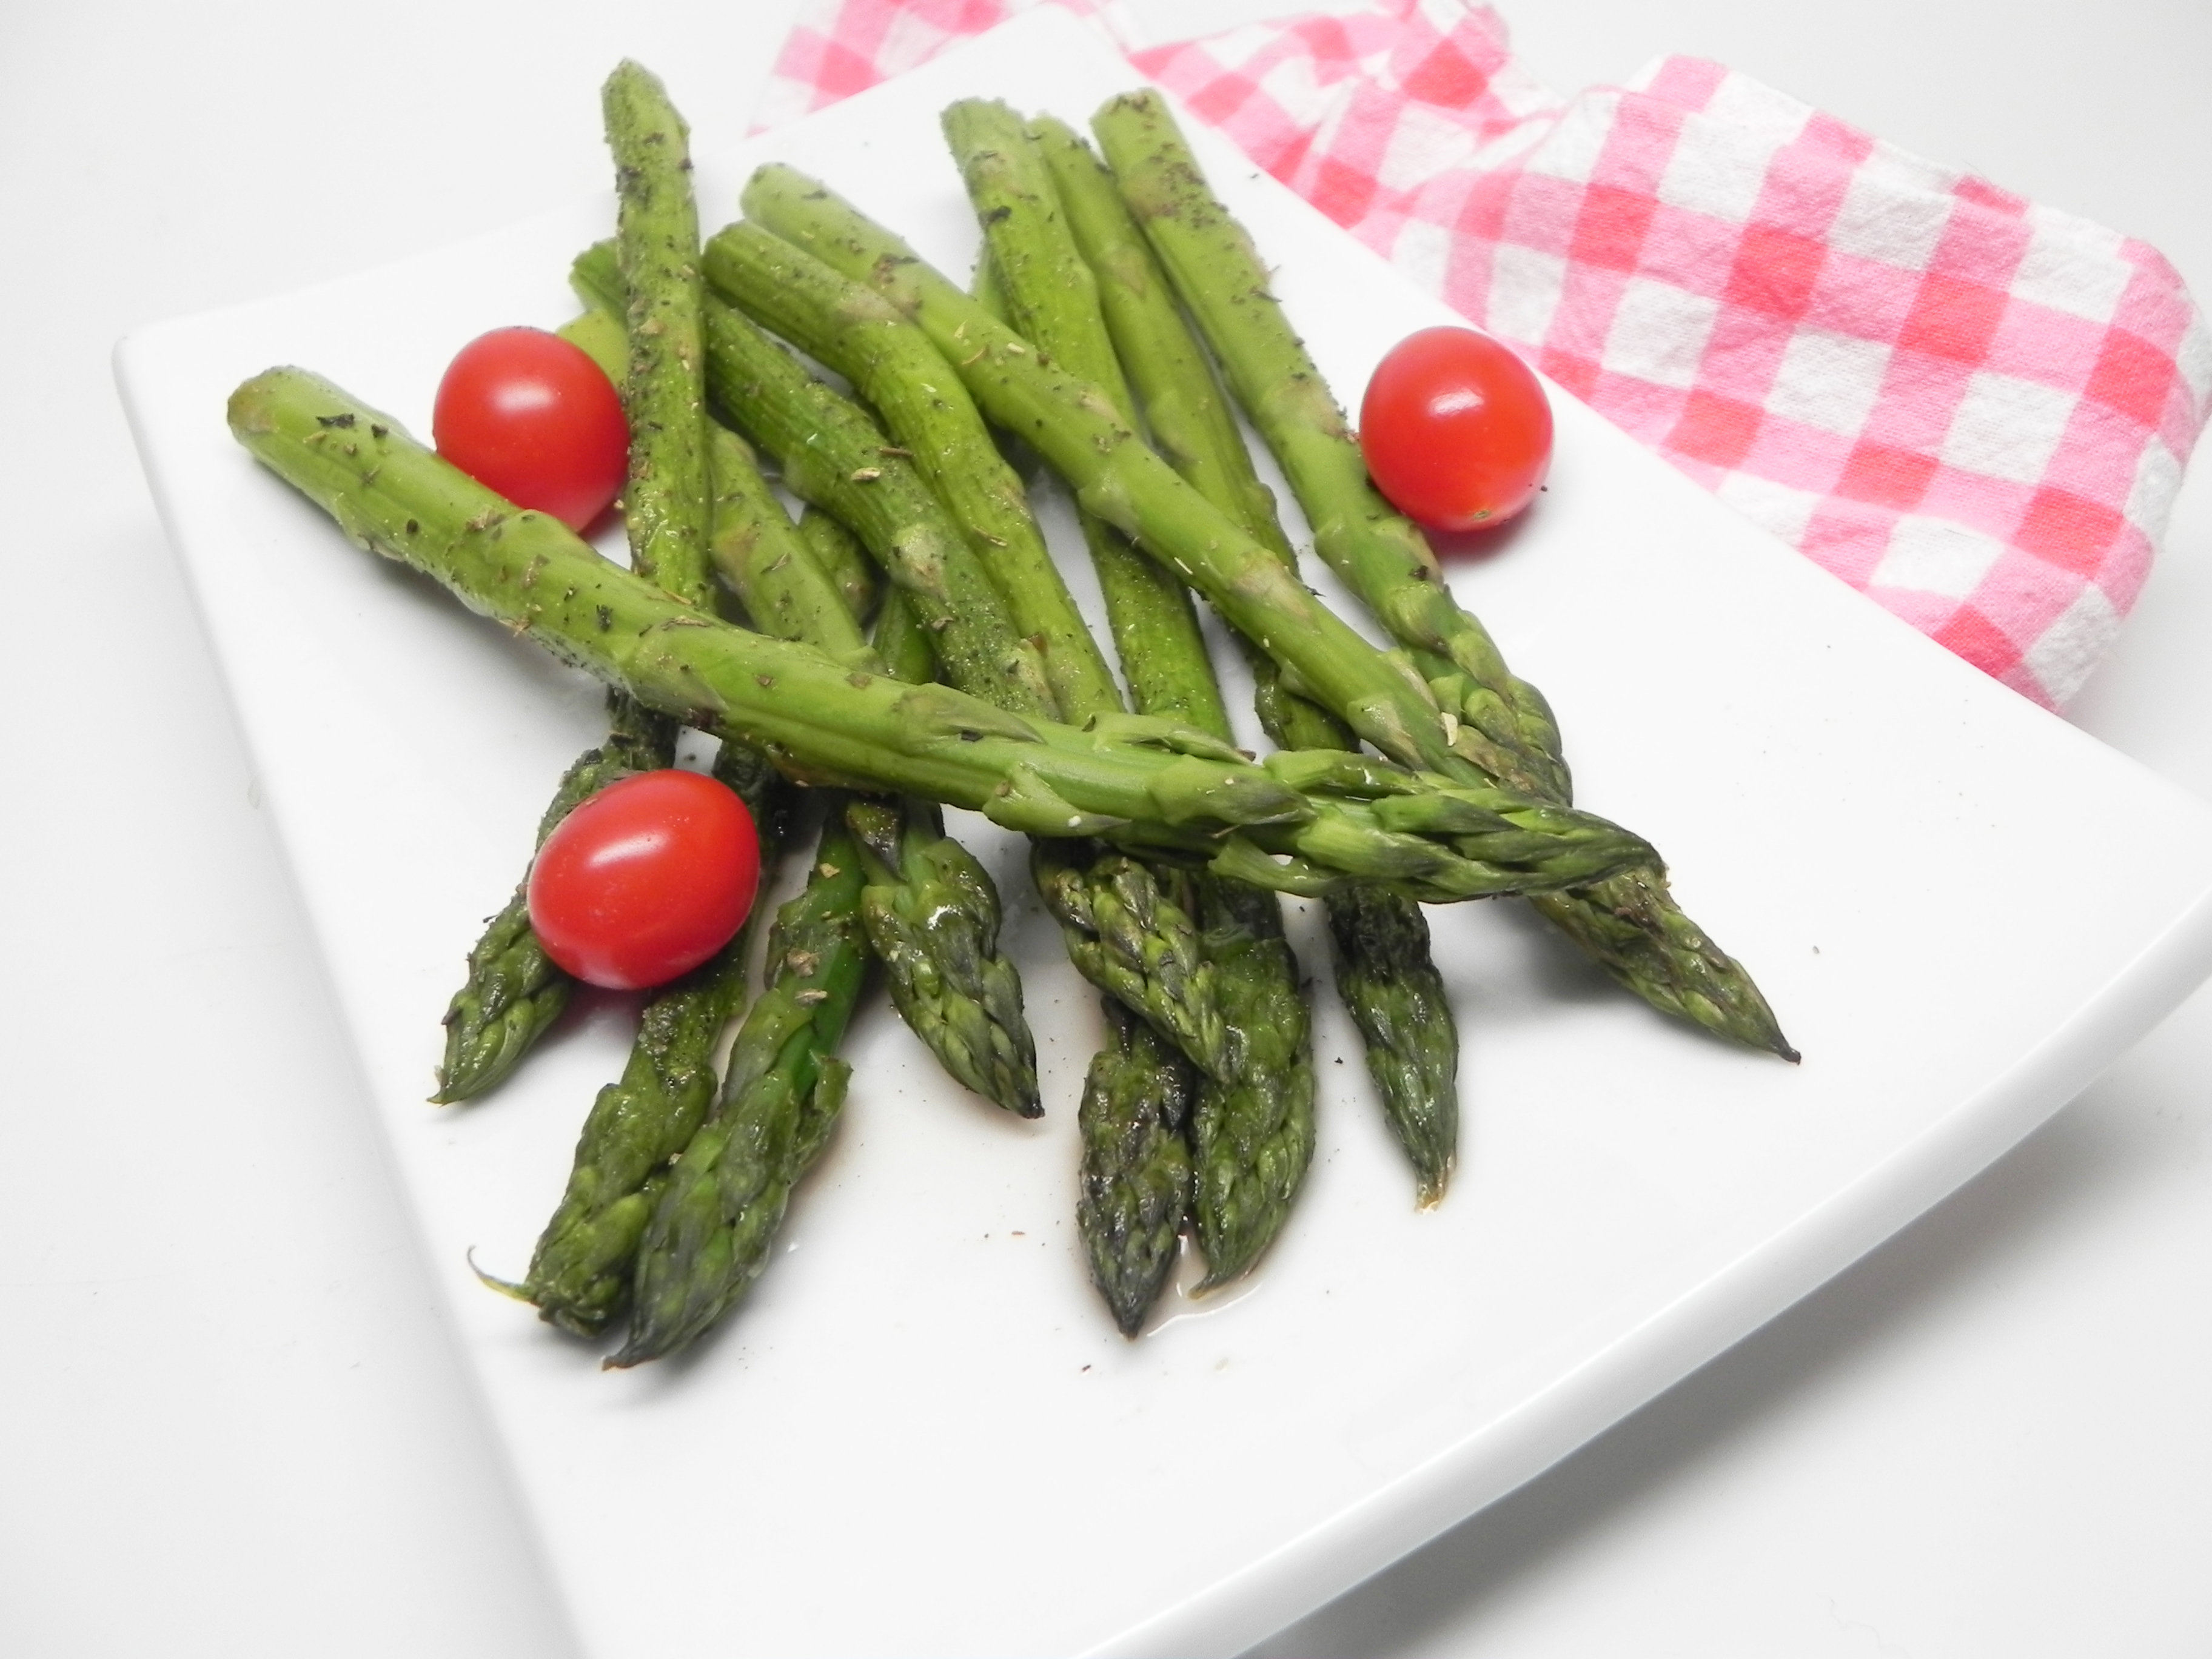 Baked Asparagus with Red Wine Vinegar